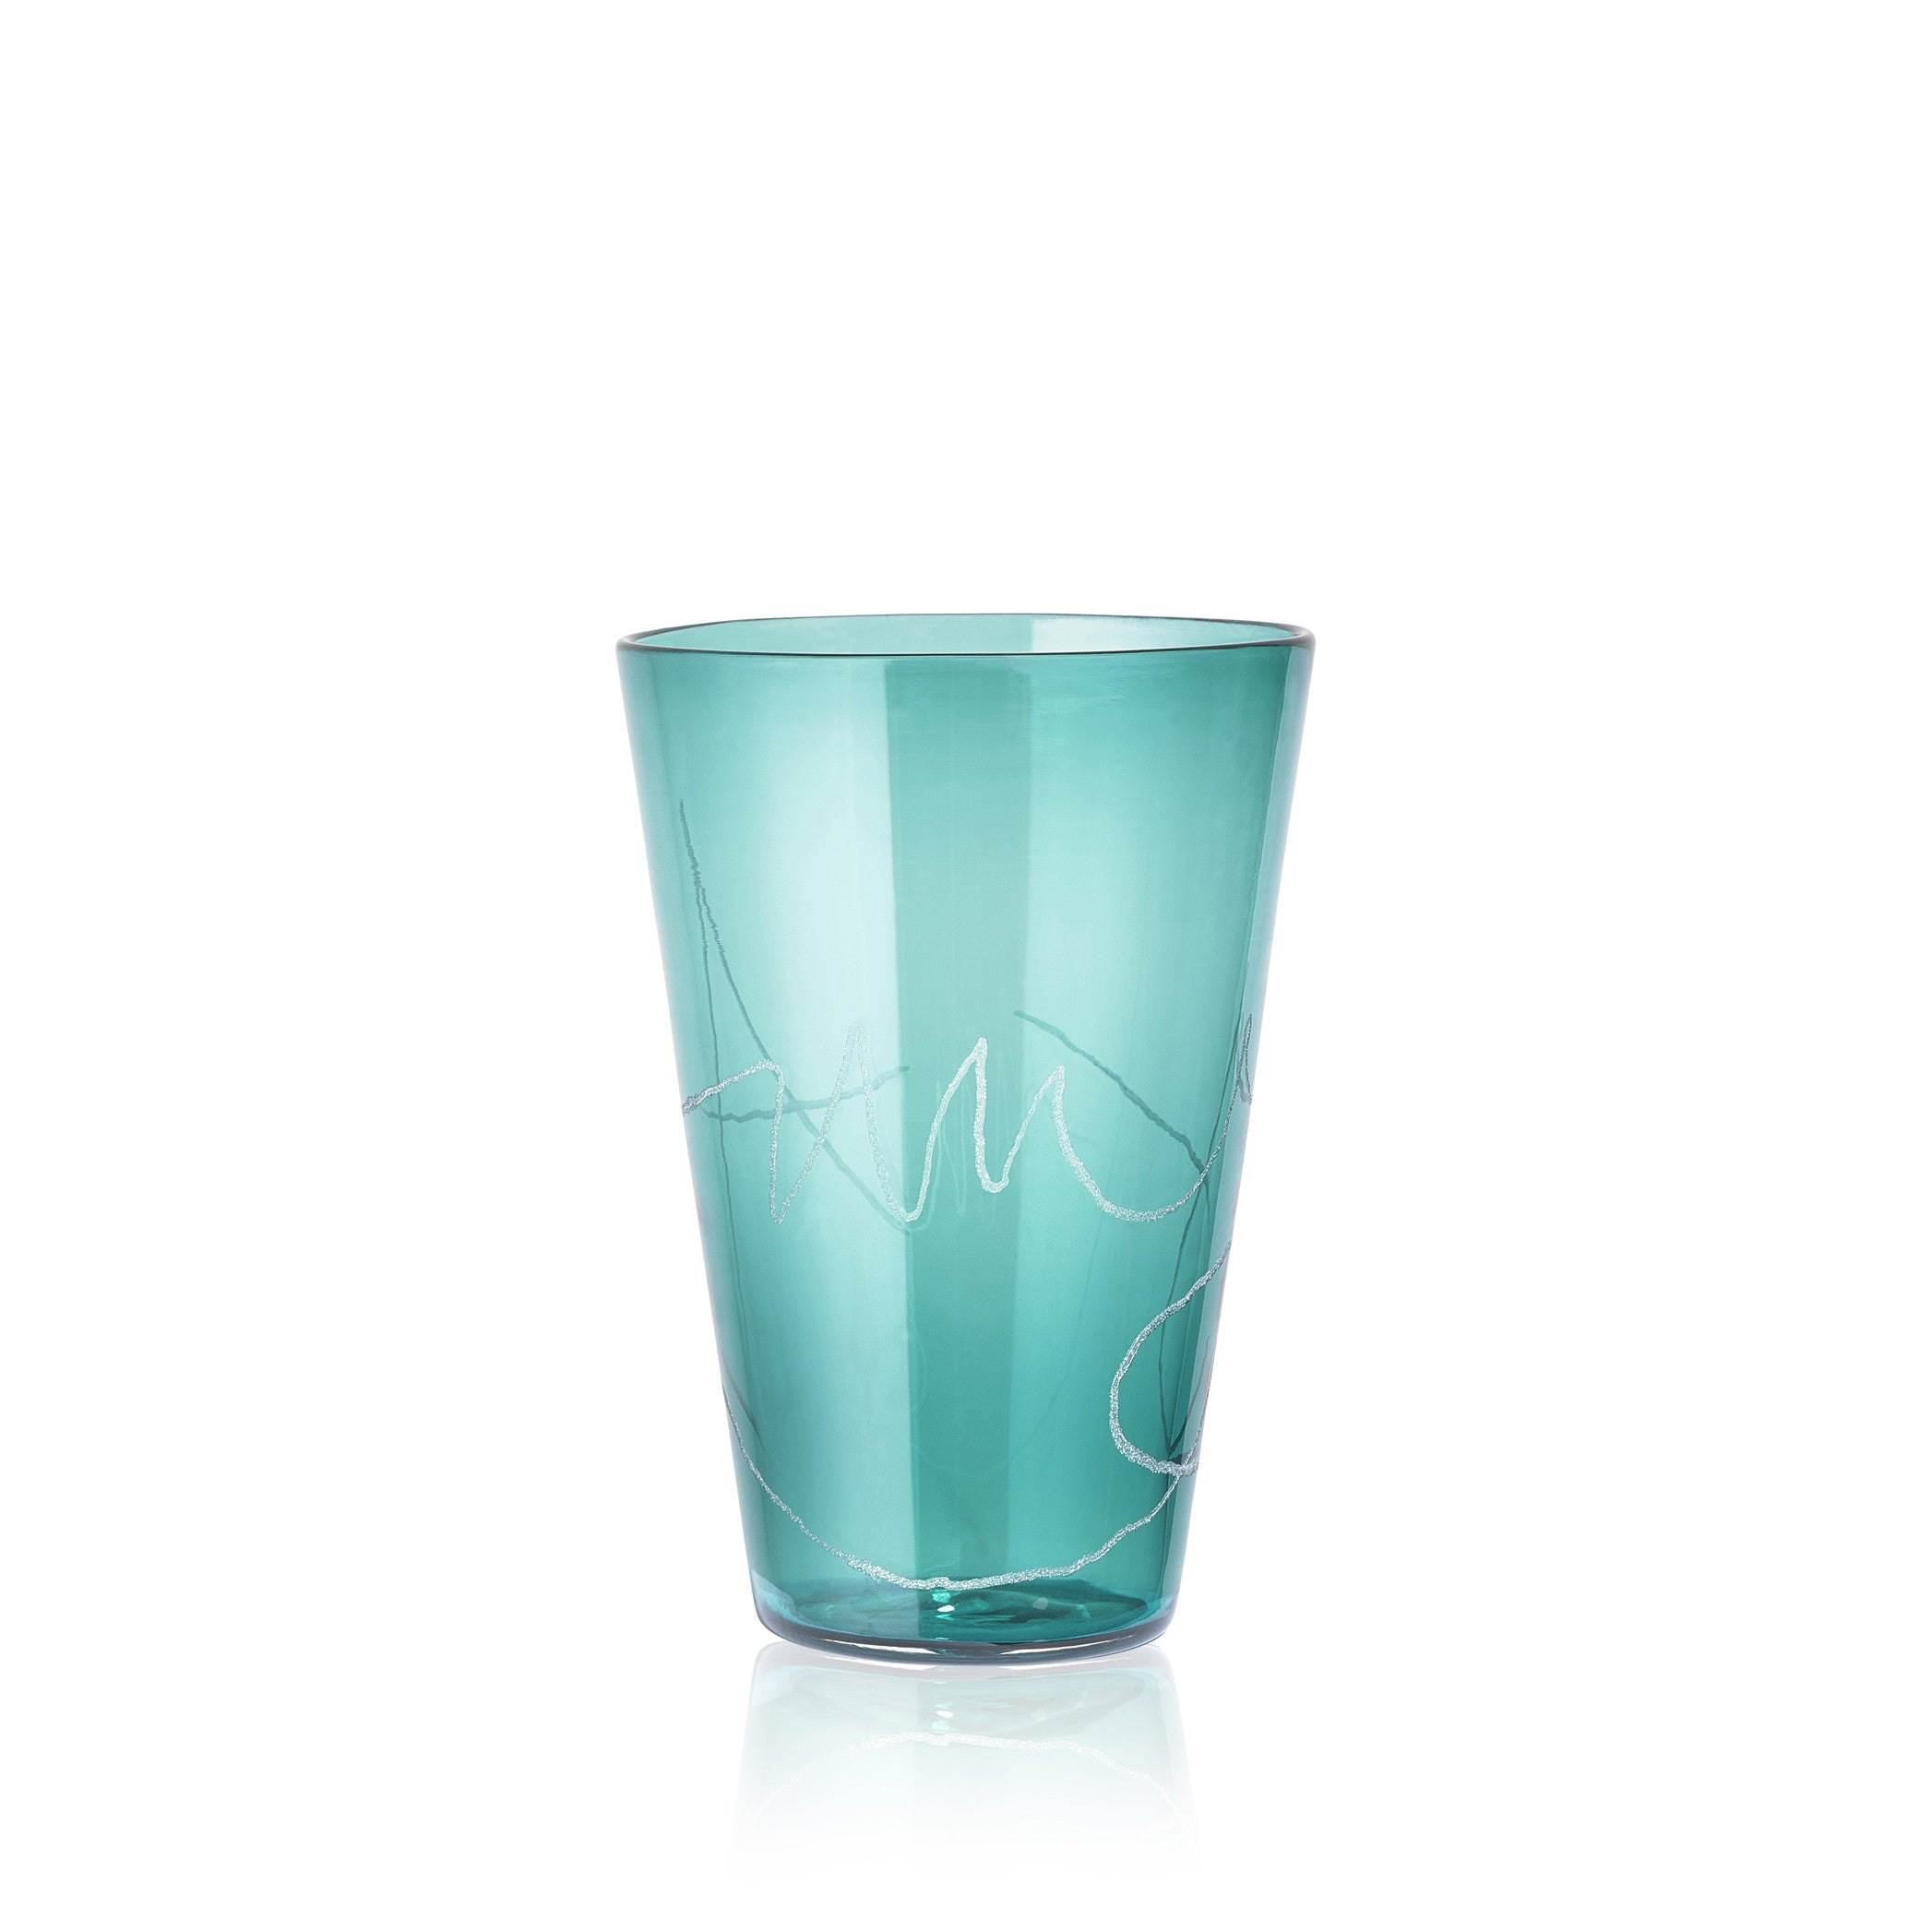 Personalised Handblown Graffiti Glass in Emerald Green